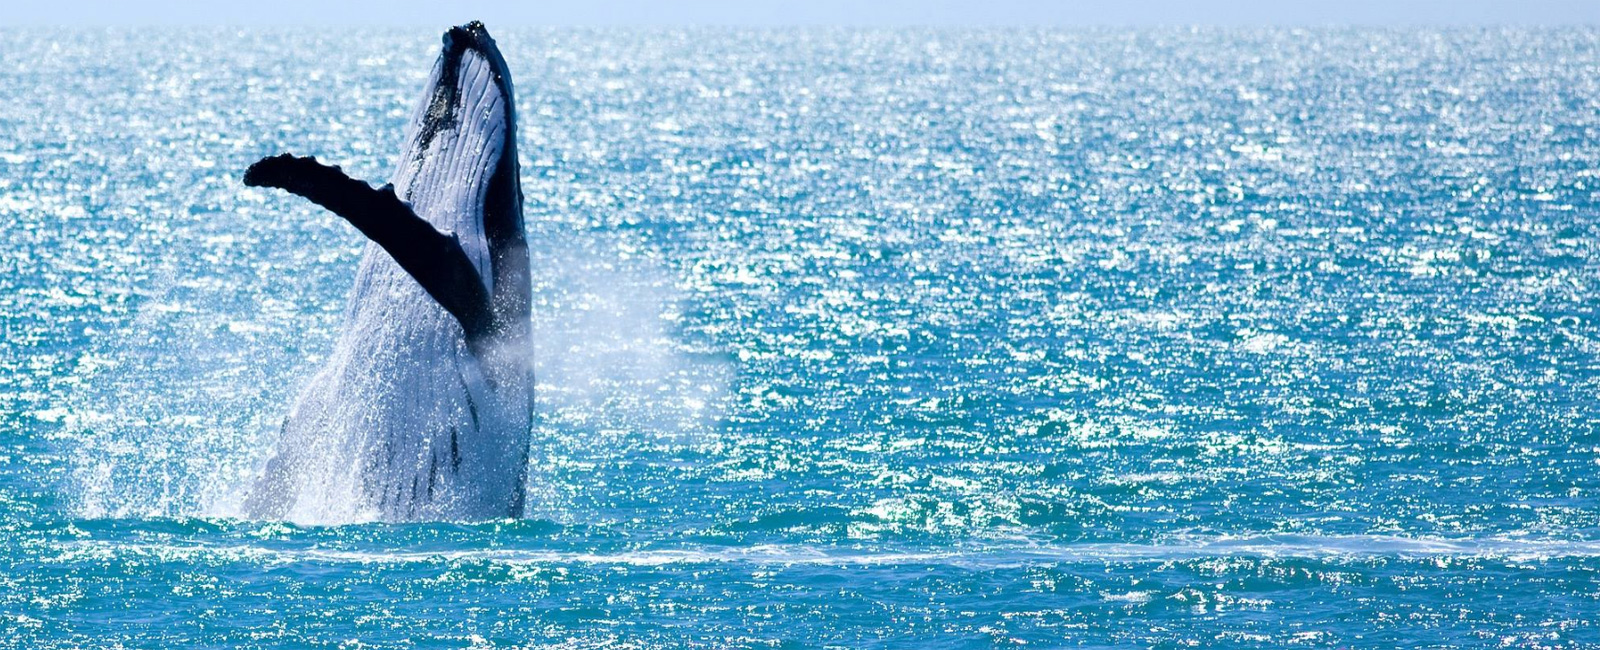 HILLARYS-WHALE-WATCHING-TOURS-whale-breach